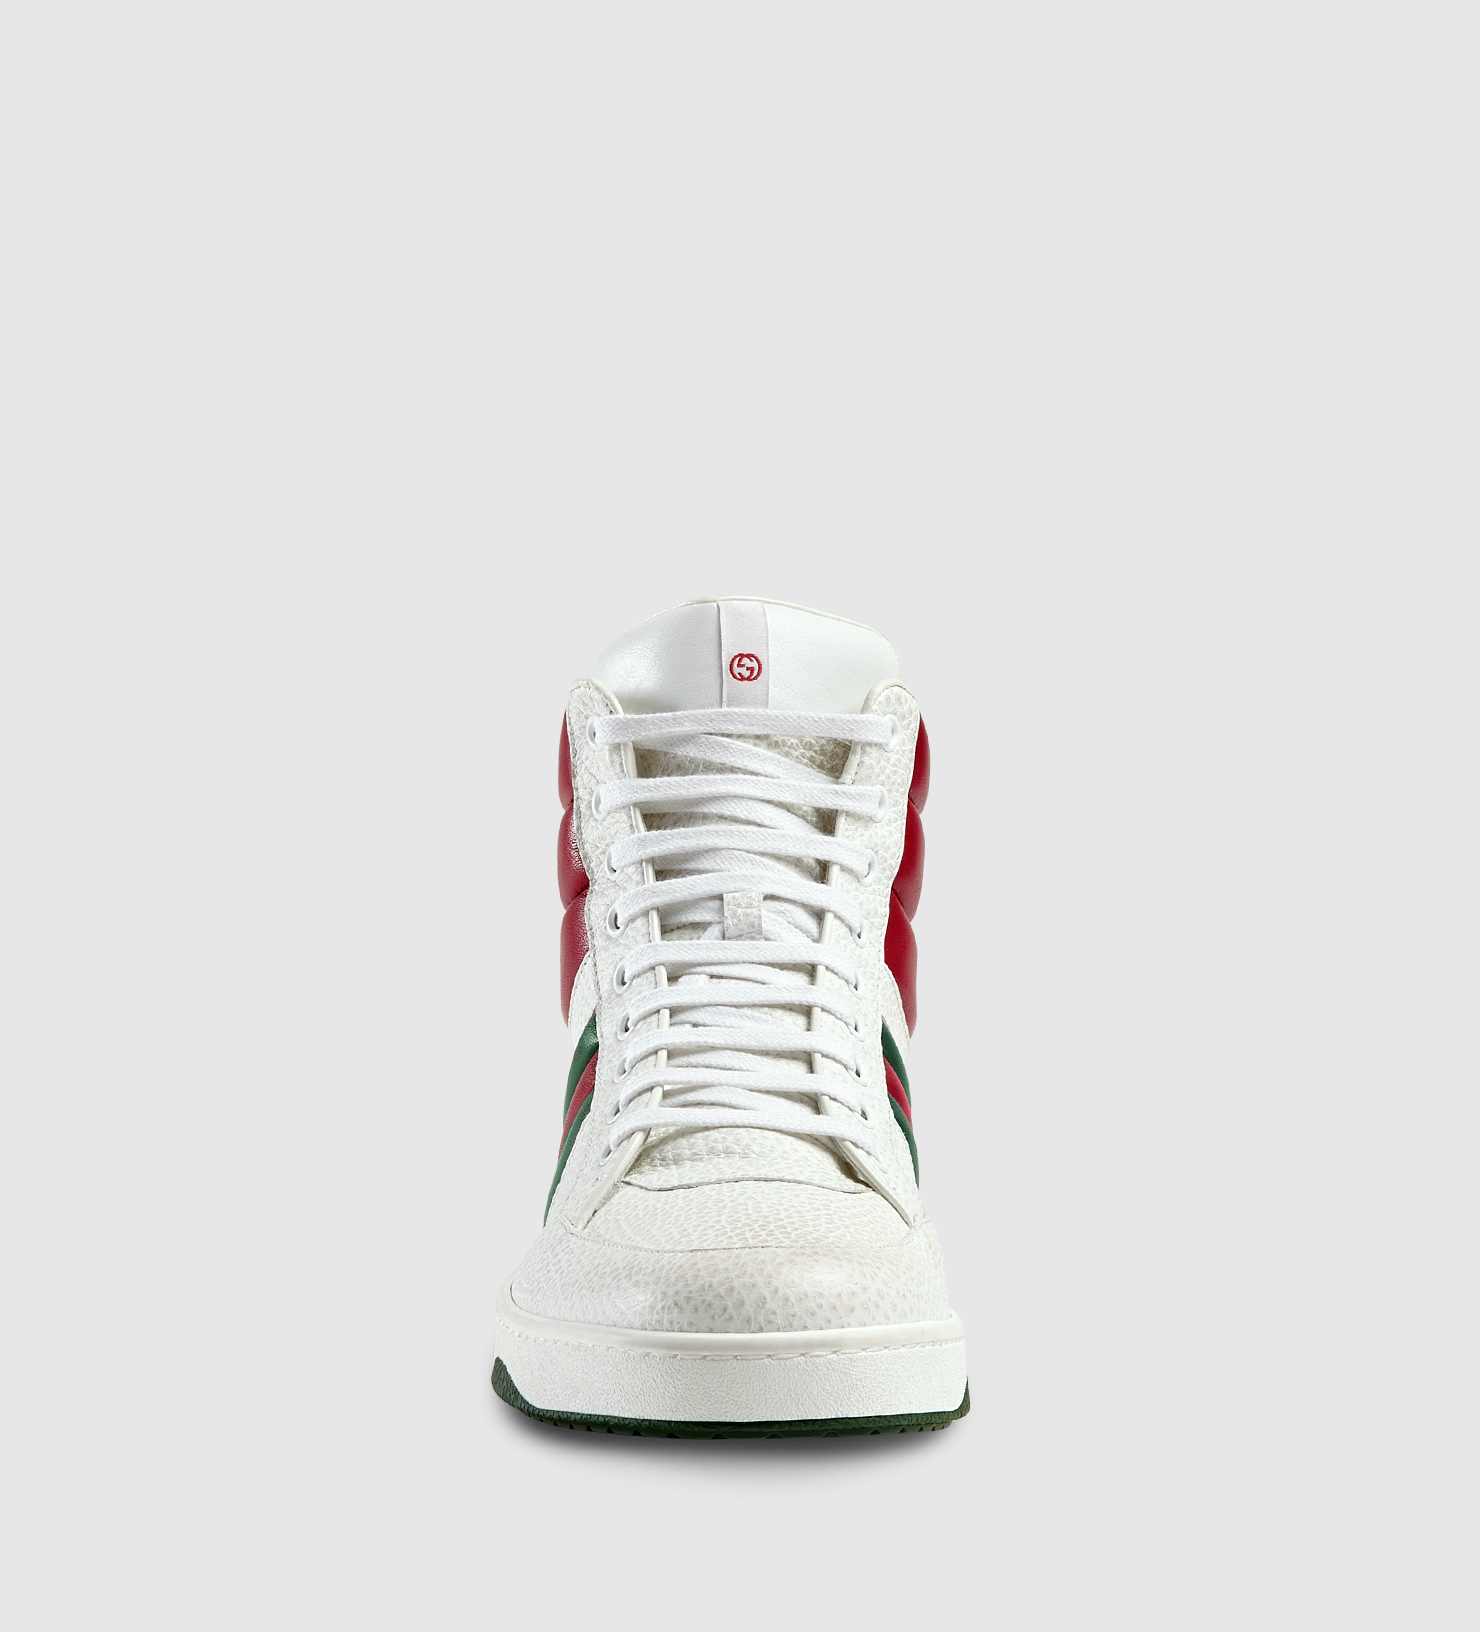 gucci contrast padded leather high top sneakers in white for men lyst. Black Bedroom Furniture Sets. Home Design Ideas